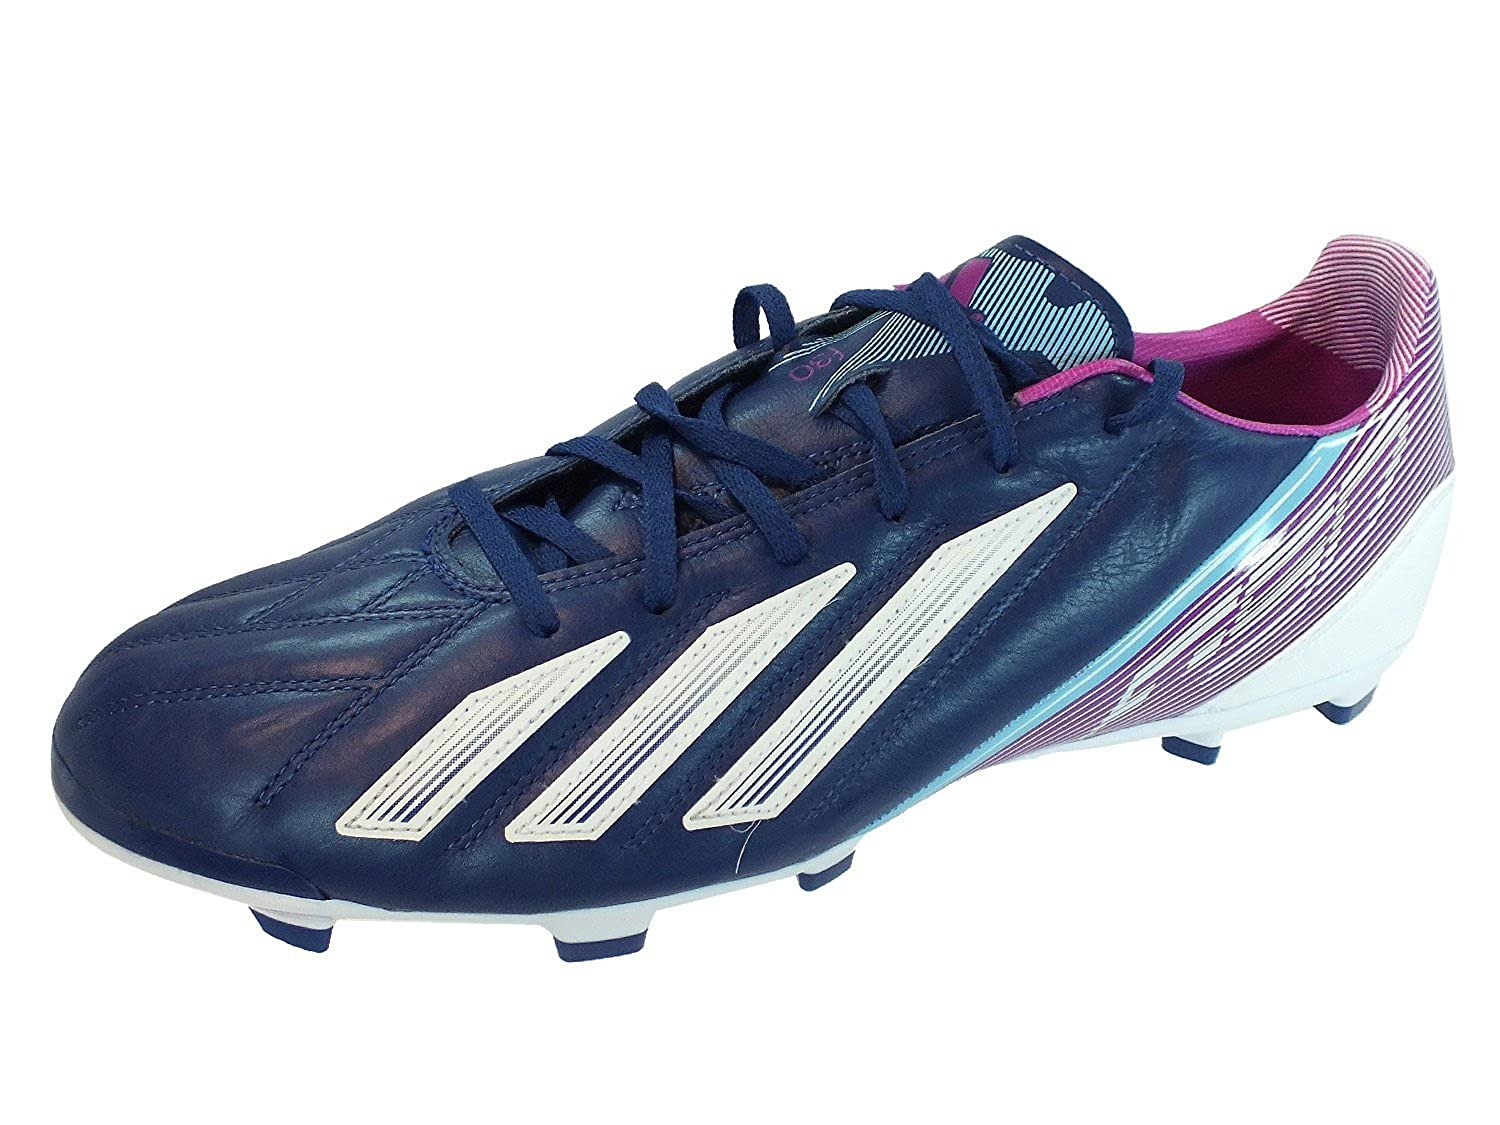 new arrival c129e 9db44 Adidas F30 TRX FG Leather Fussballschuhe dark blue-running white-vivid pink  - 46 Amazon.co.uk Shoes  Bags